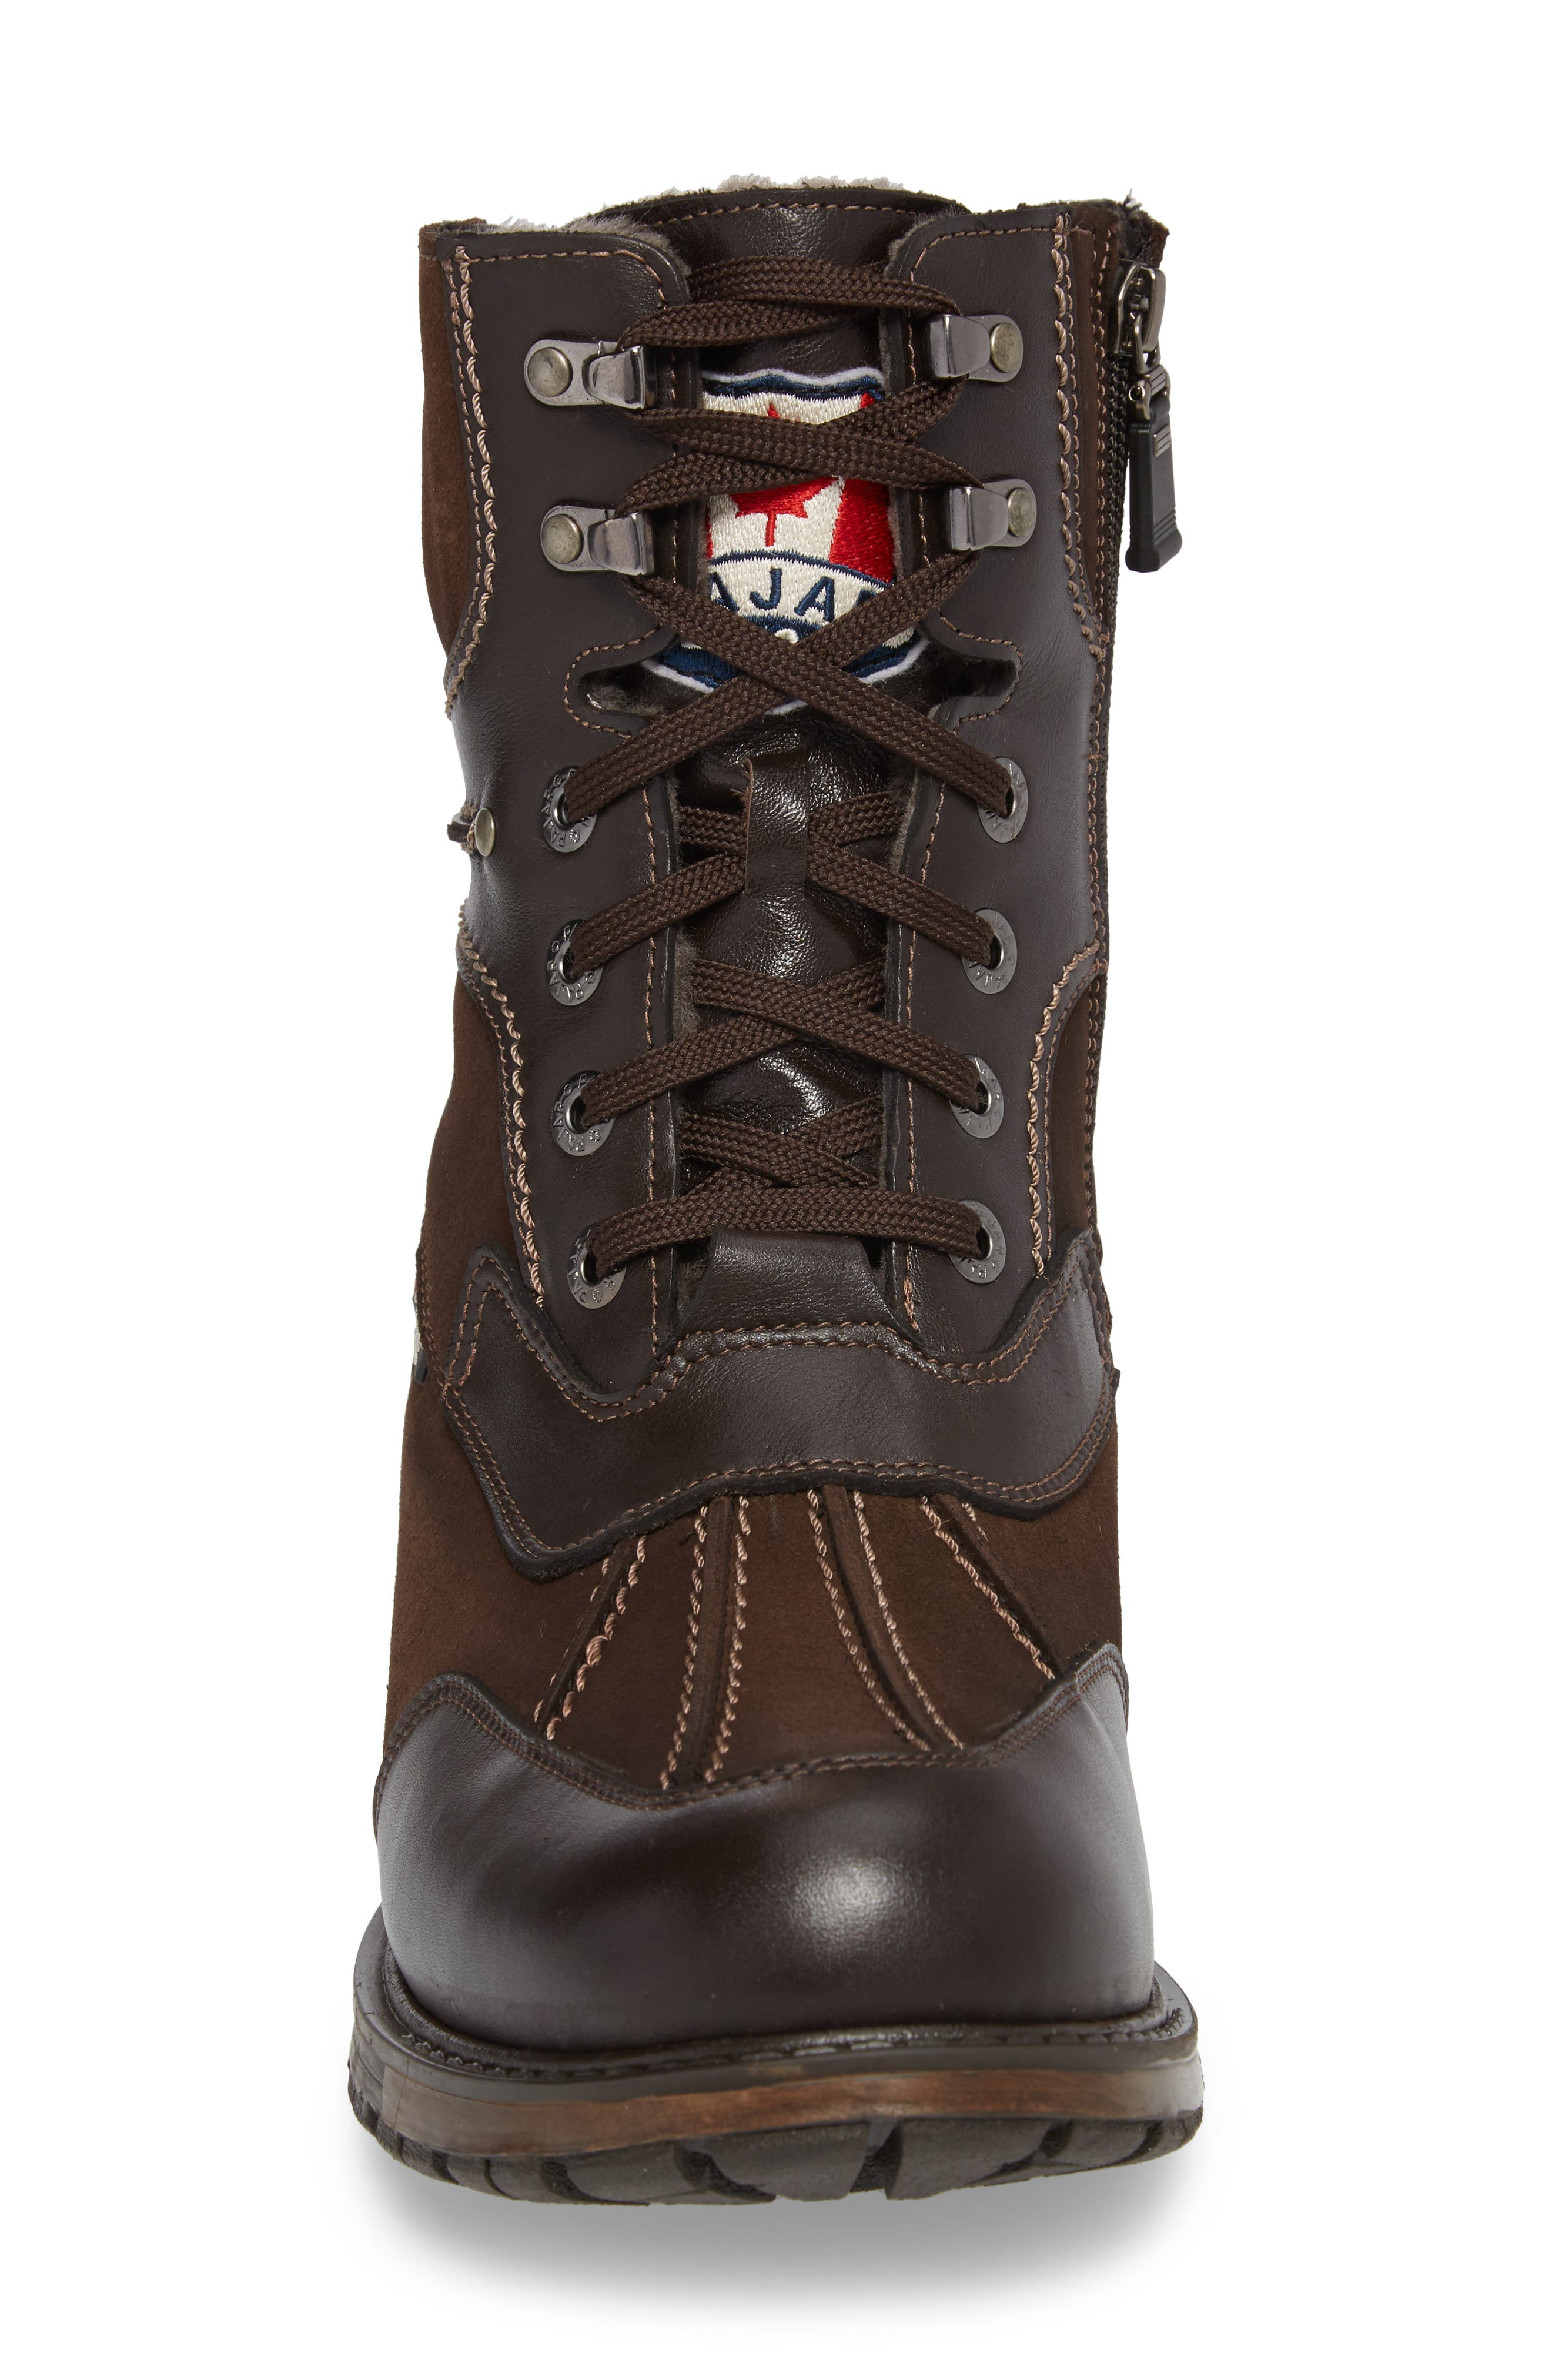 'Carrefour' Snow Boot,                             Alternate thumbnail 4, color,                             DARK BROWN LEATHER